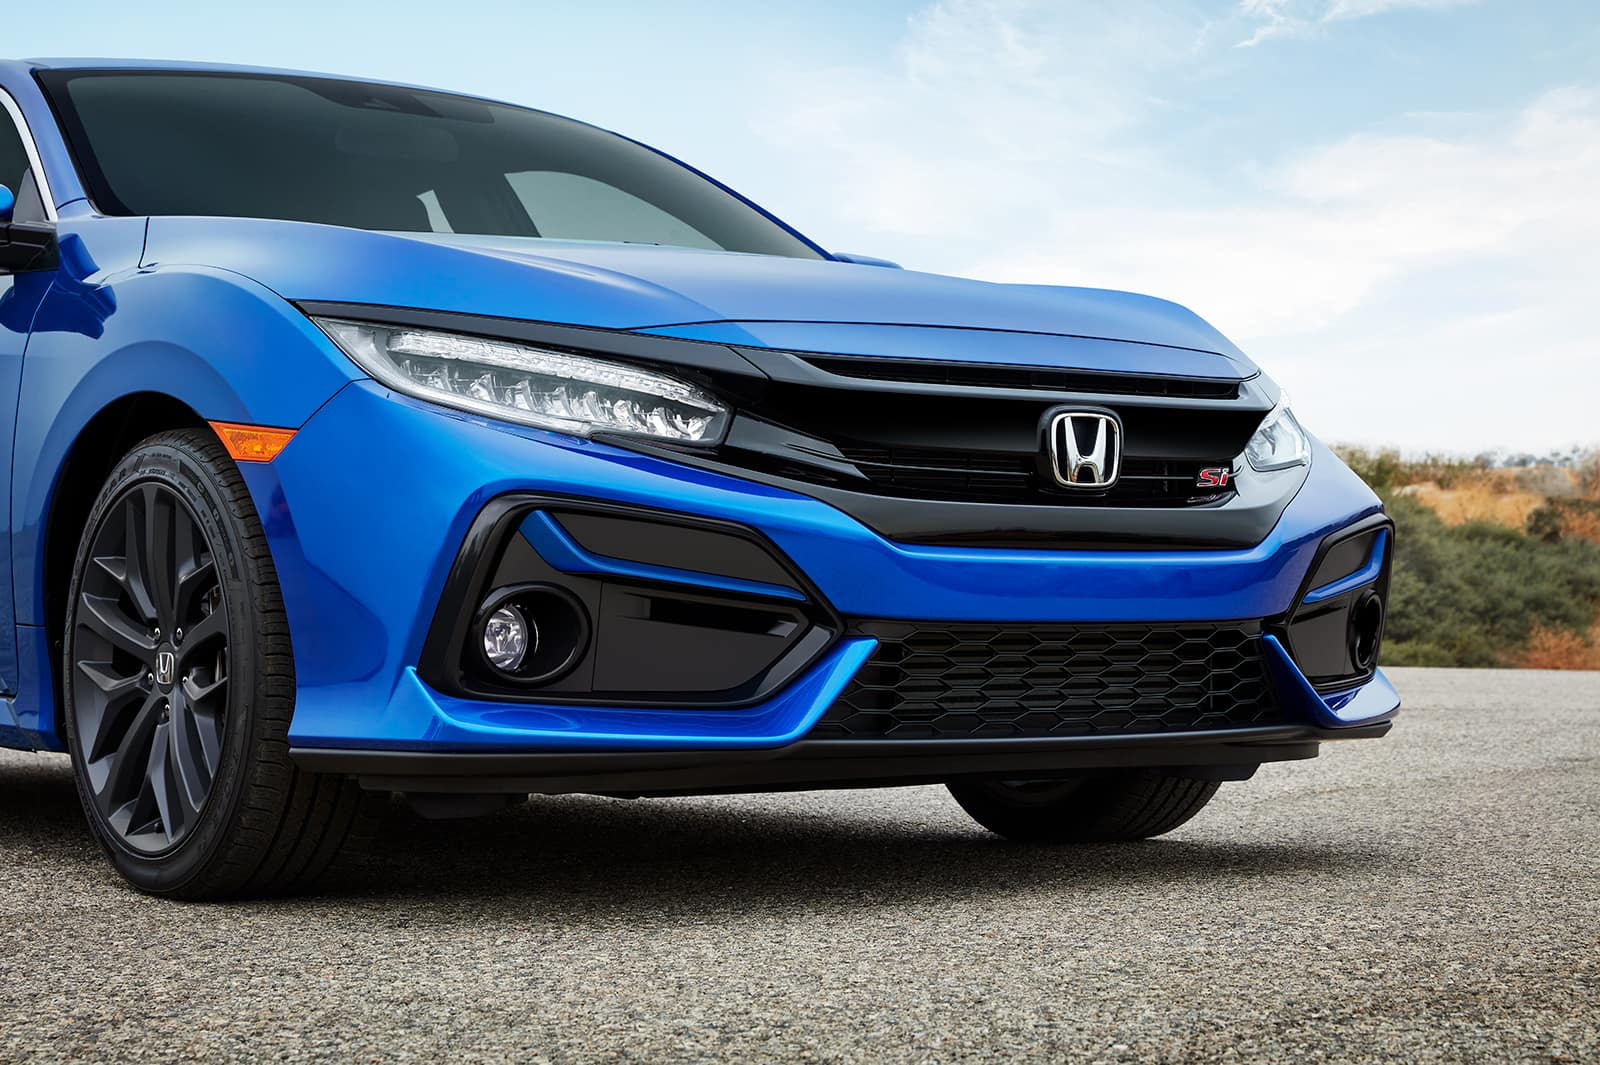 comparison-of-the-2020-Civic-and-the-2020-Accord-Massachusetts | Blue 2020 civic close up